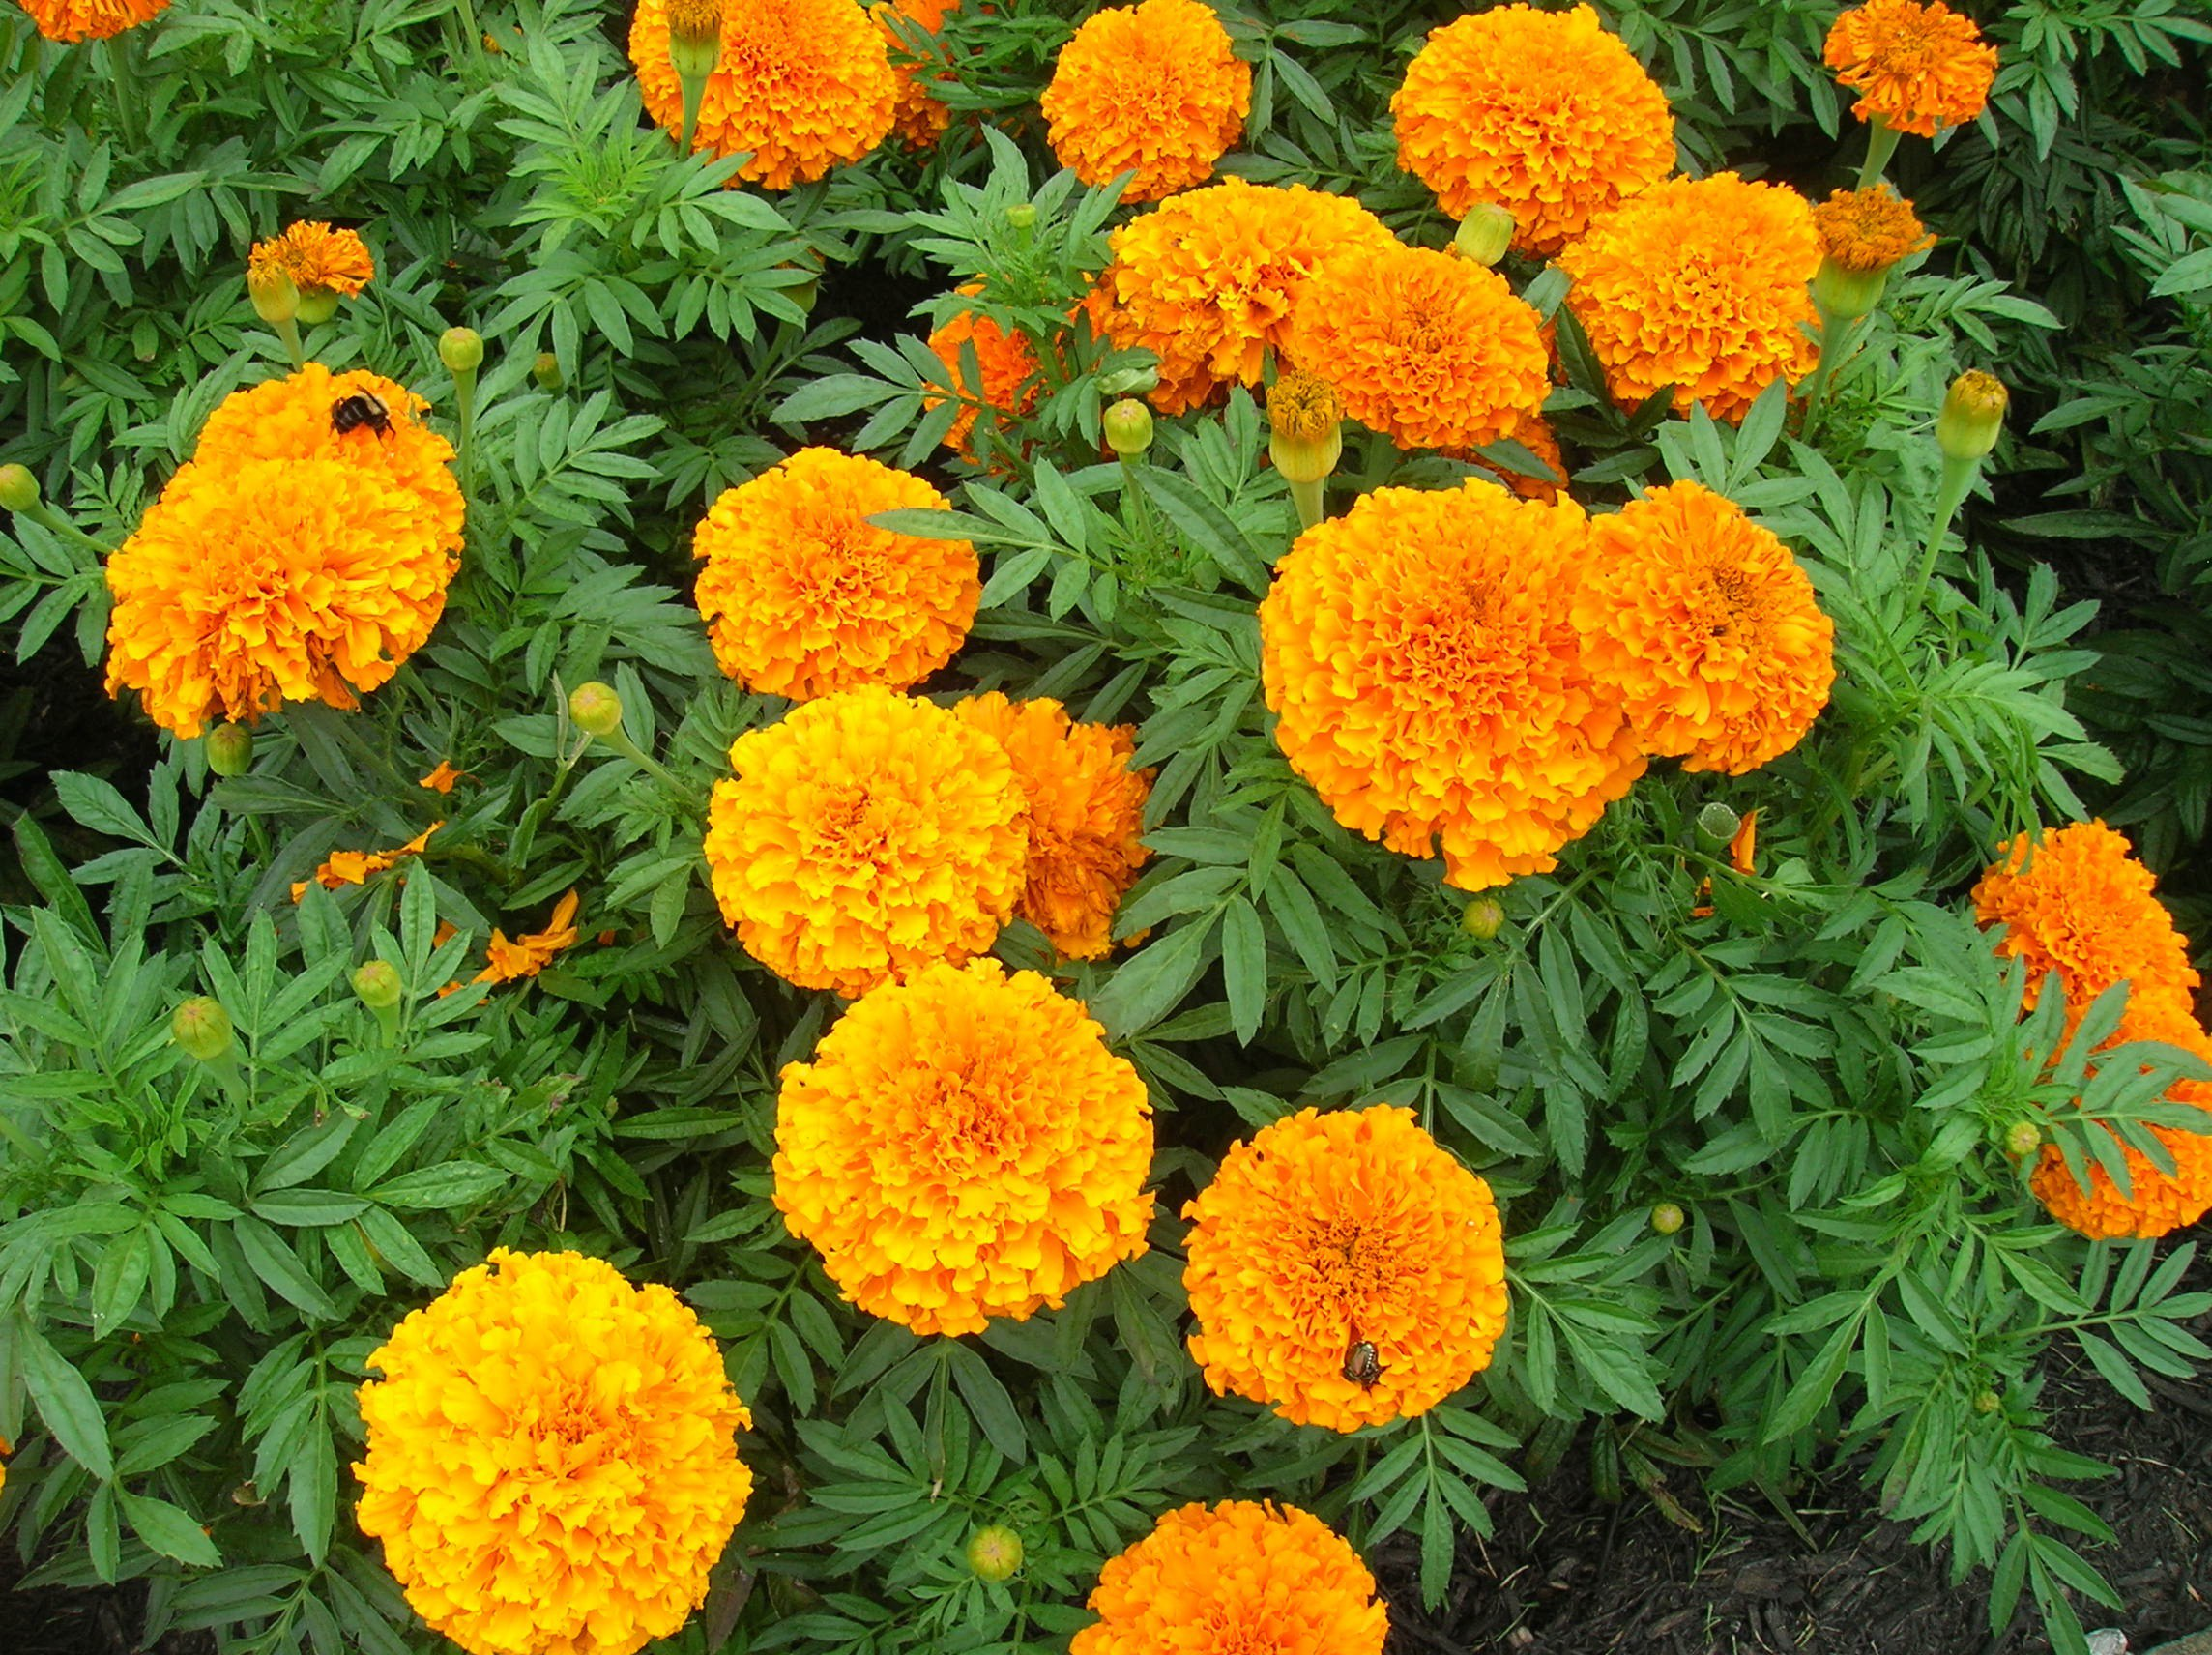 Marigold High Quality Background on Wallpapers Vista